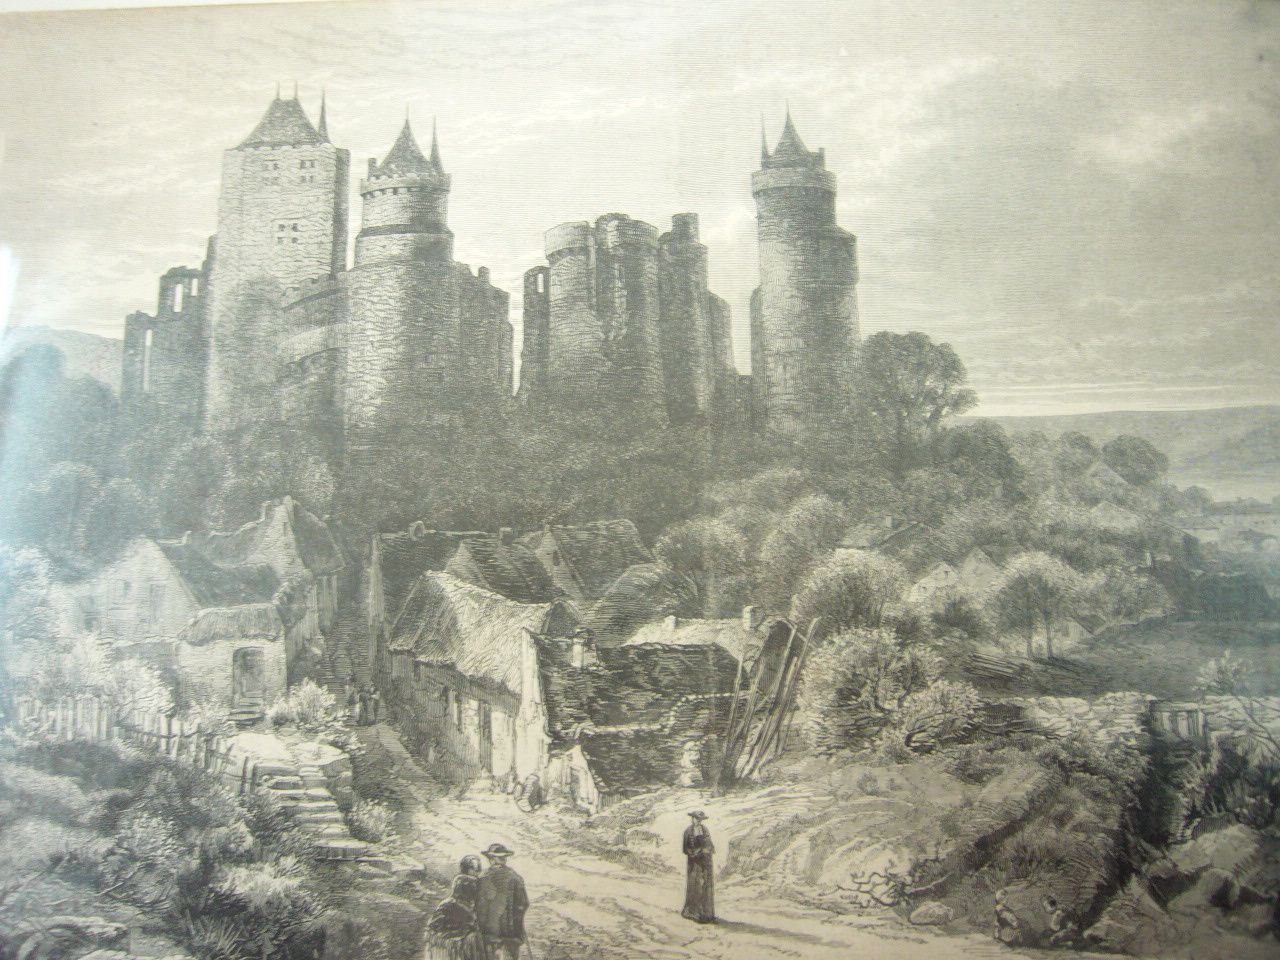 EAU-FORT DU CHATEAU DE PIERREFONDS DE 1850/1890